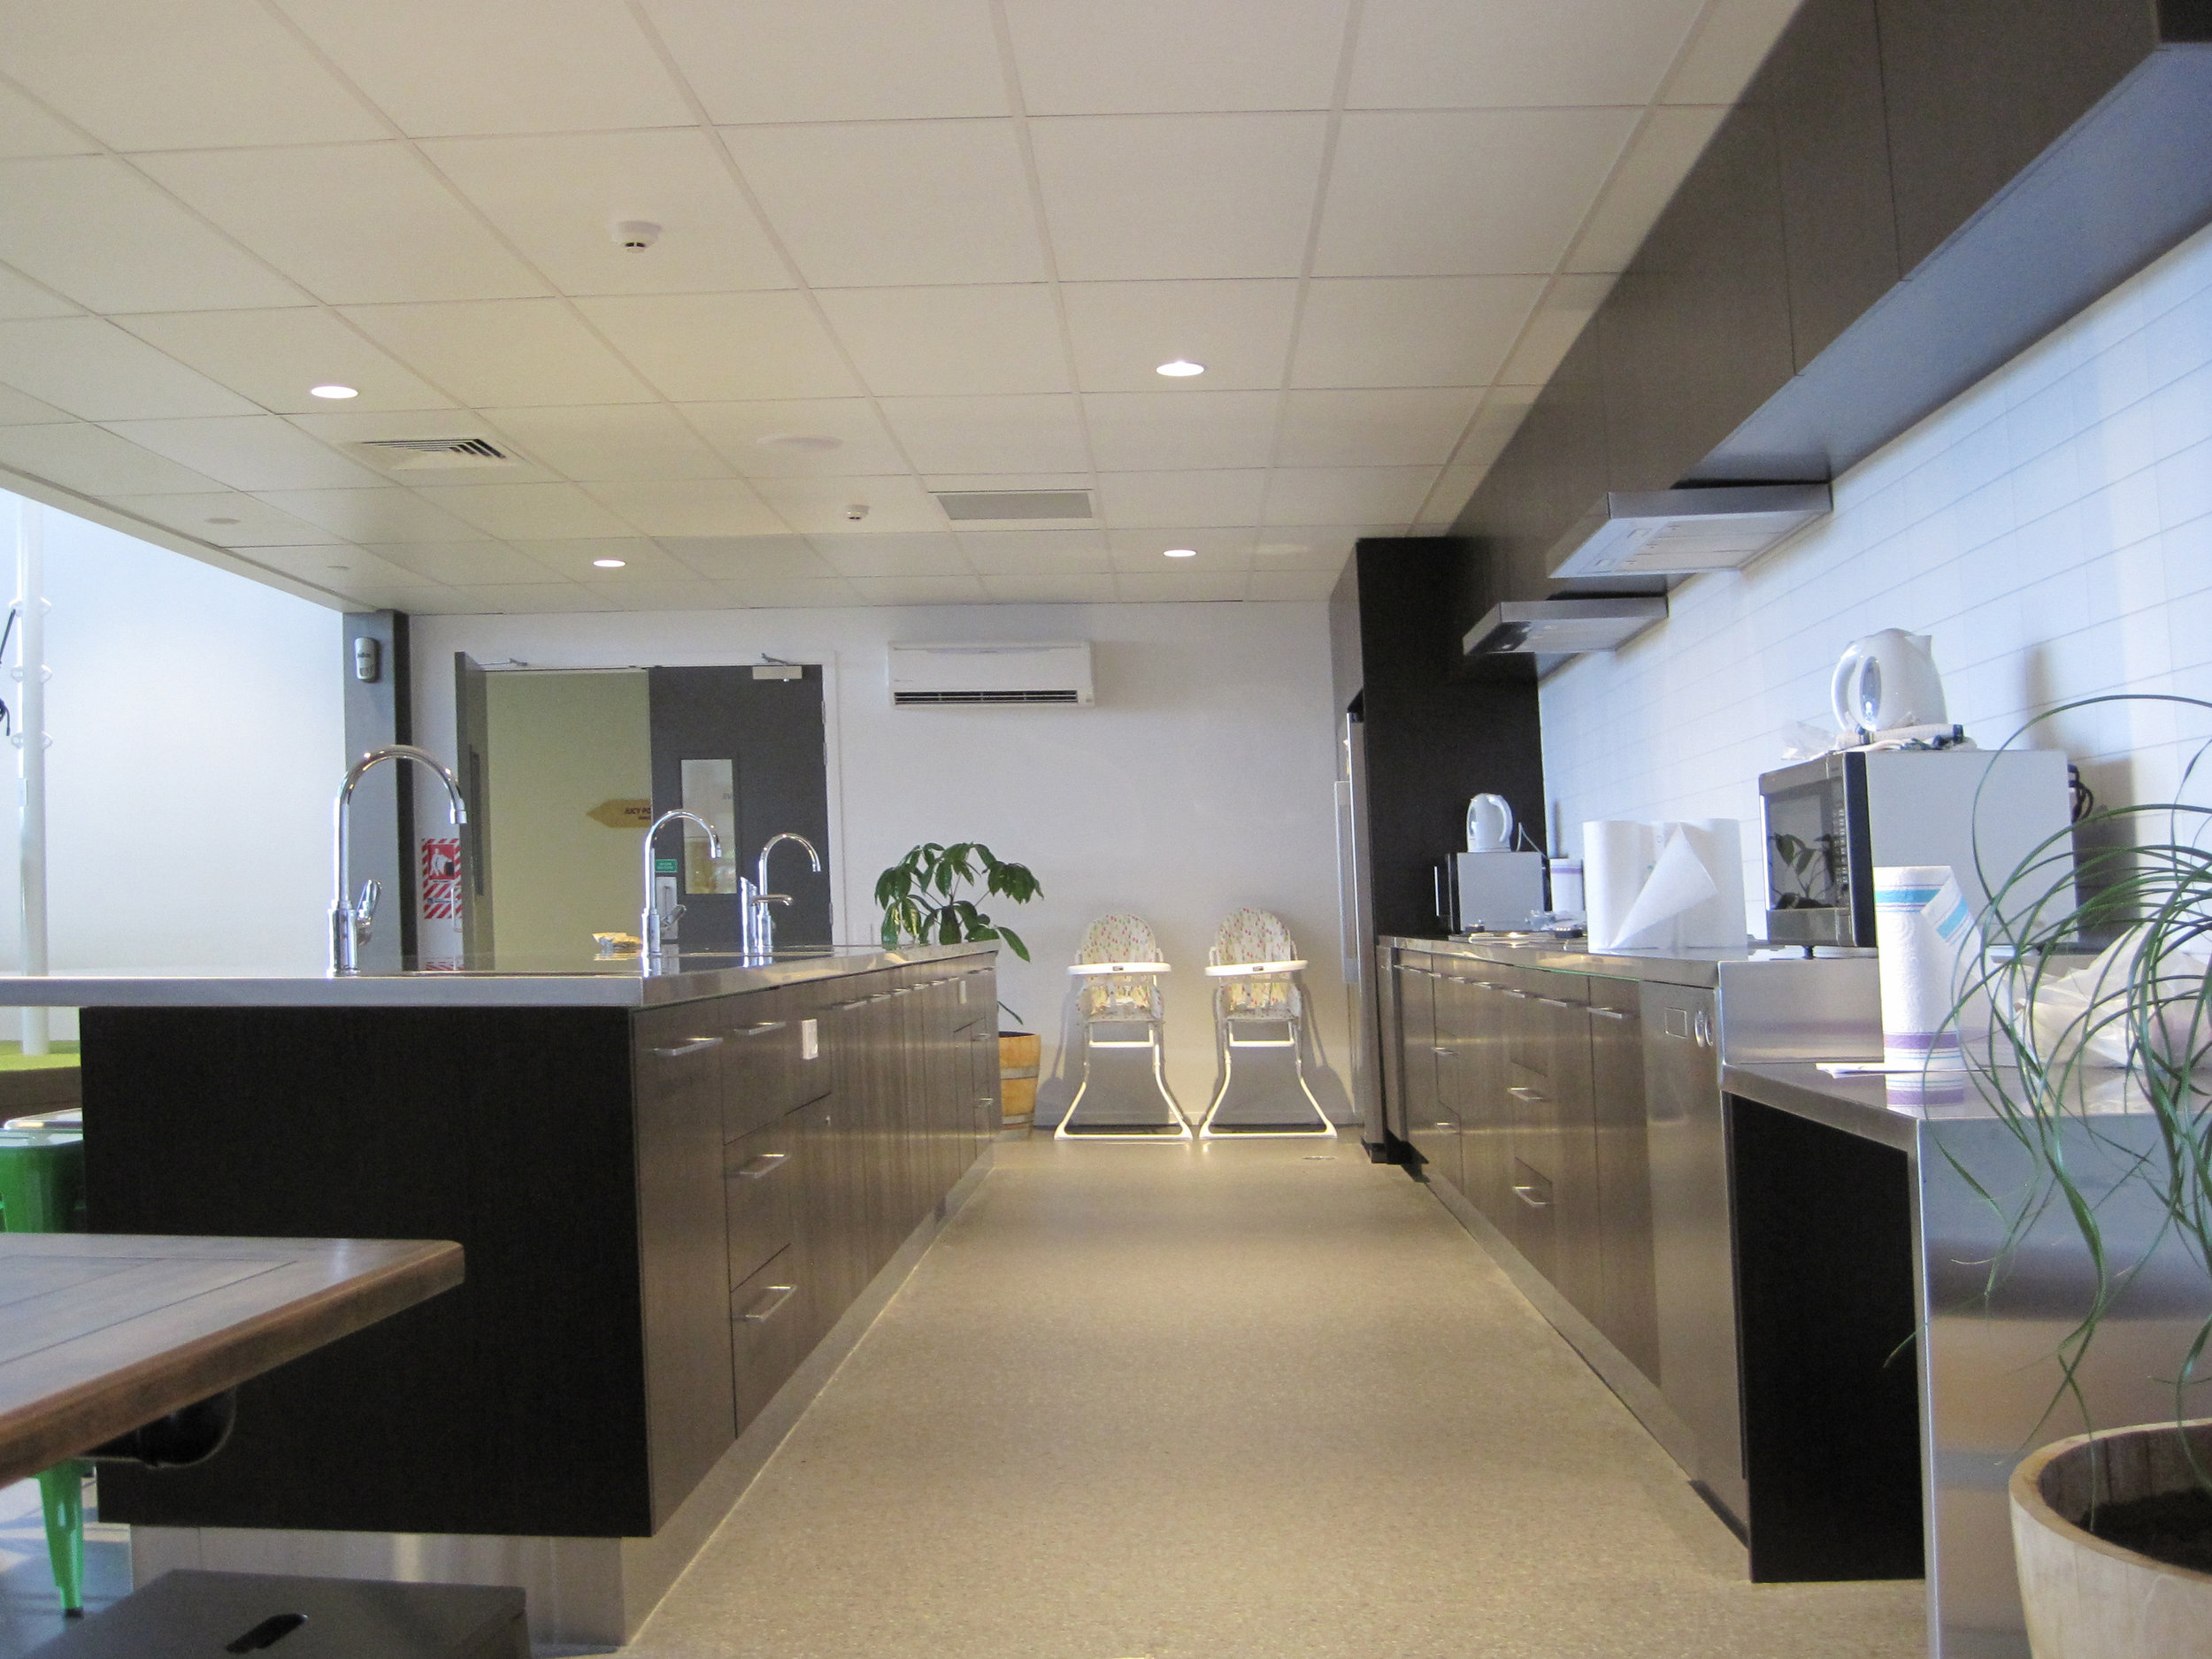 Jucy Snooze Christchurch Shared Kitchen Facilities